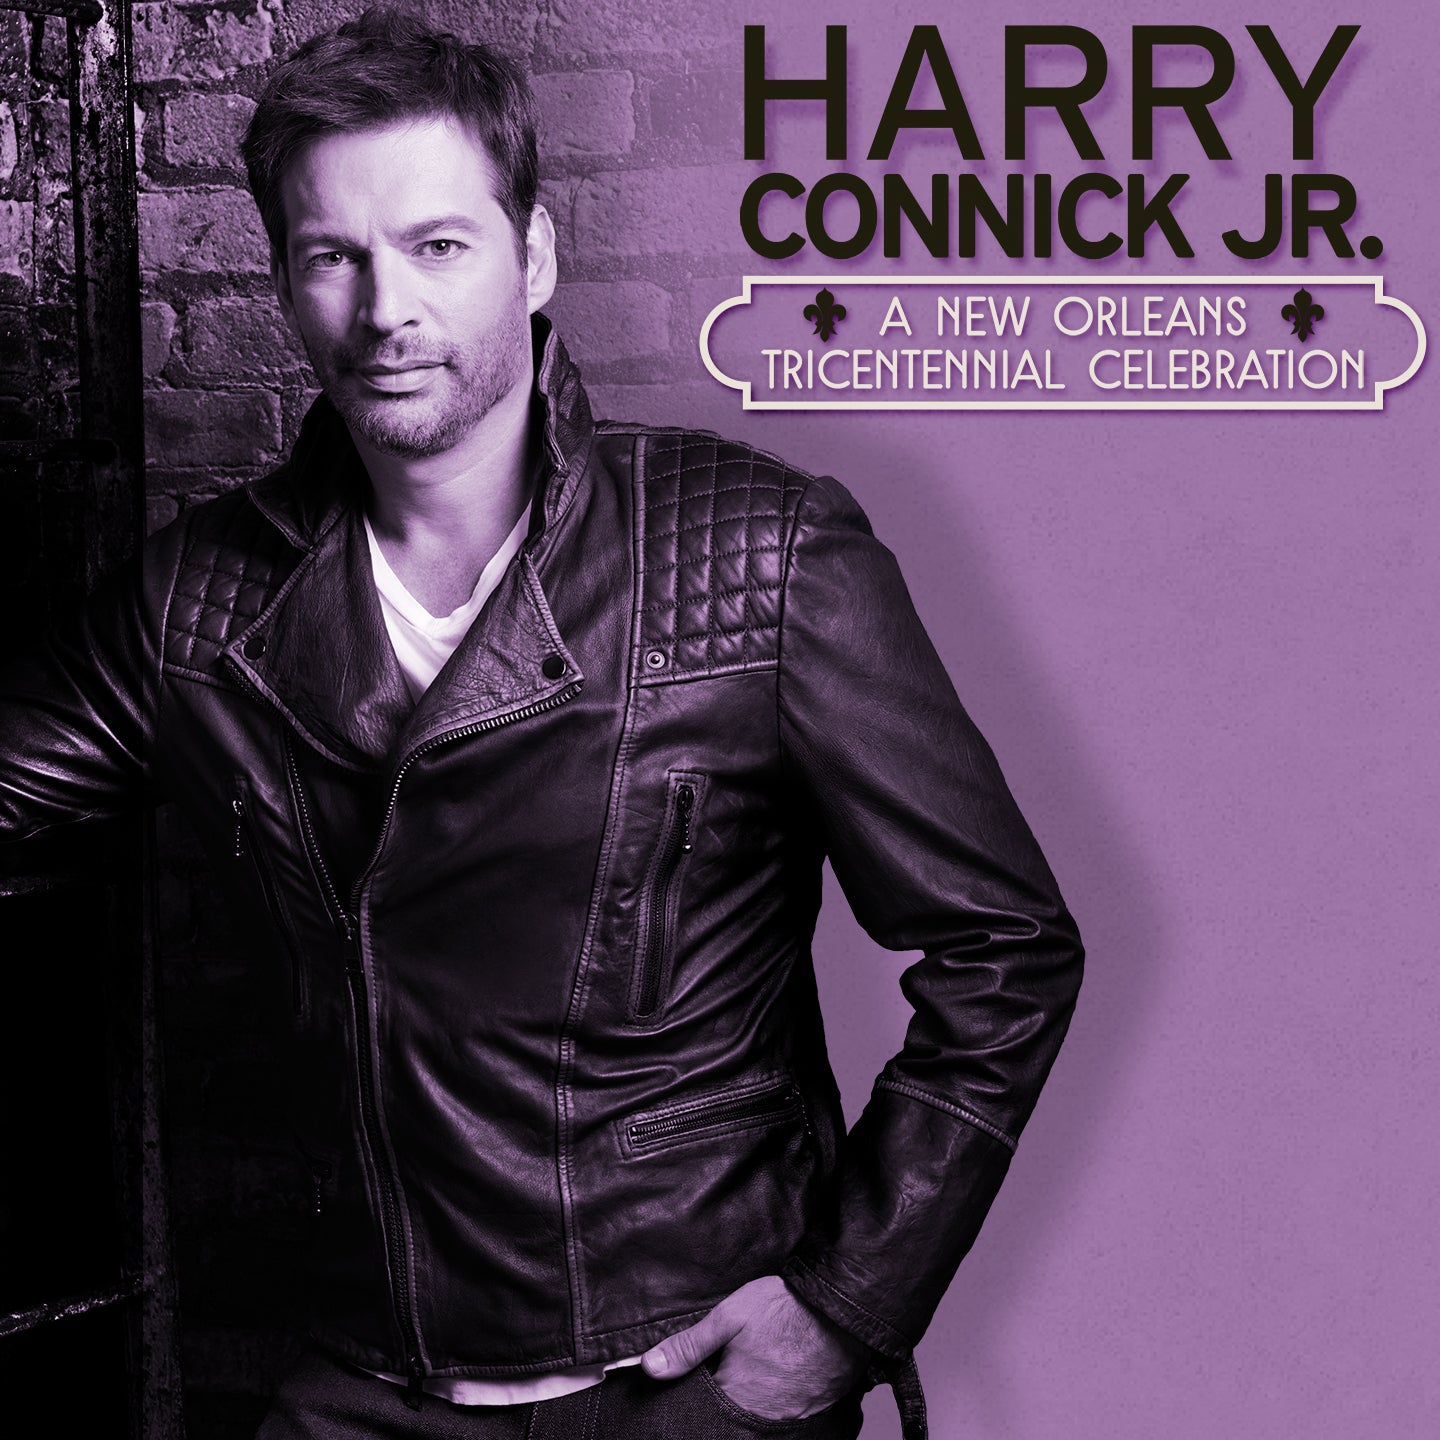 Harry Connick Jr. – A New Orleans Tricentennial Celebration